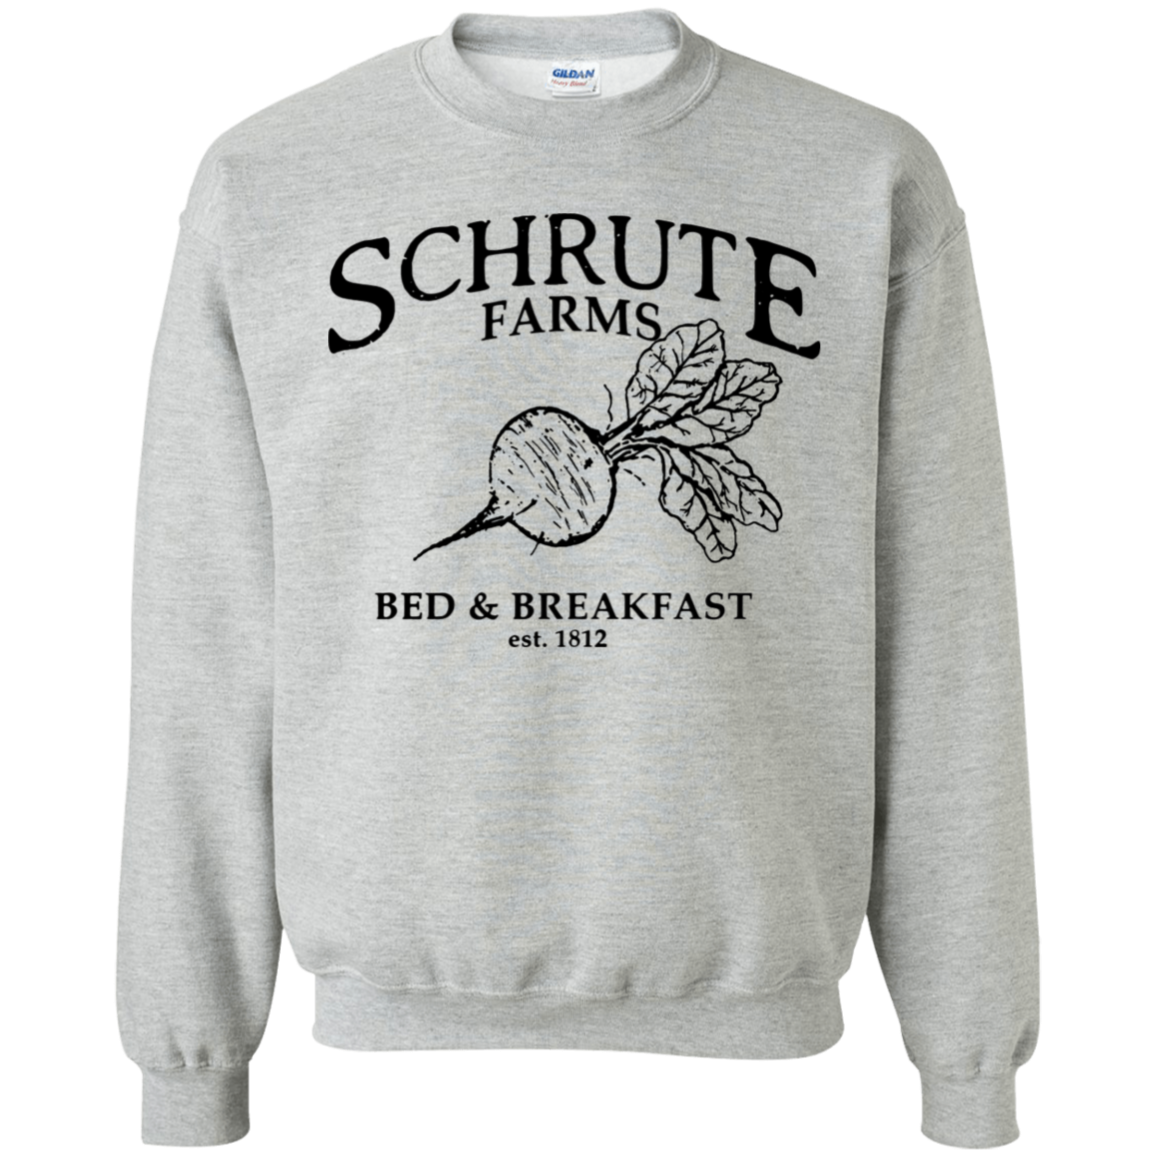 Predownload: Schrute Farms Bed And Breakfast Est 1812 Sweater Schrute Farms Bed And Breakfast Sweaters [ 1155 x 1155 Pixel ]